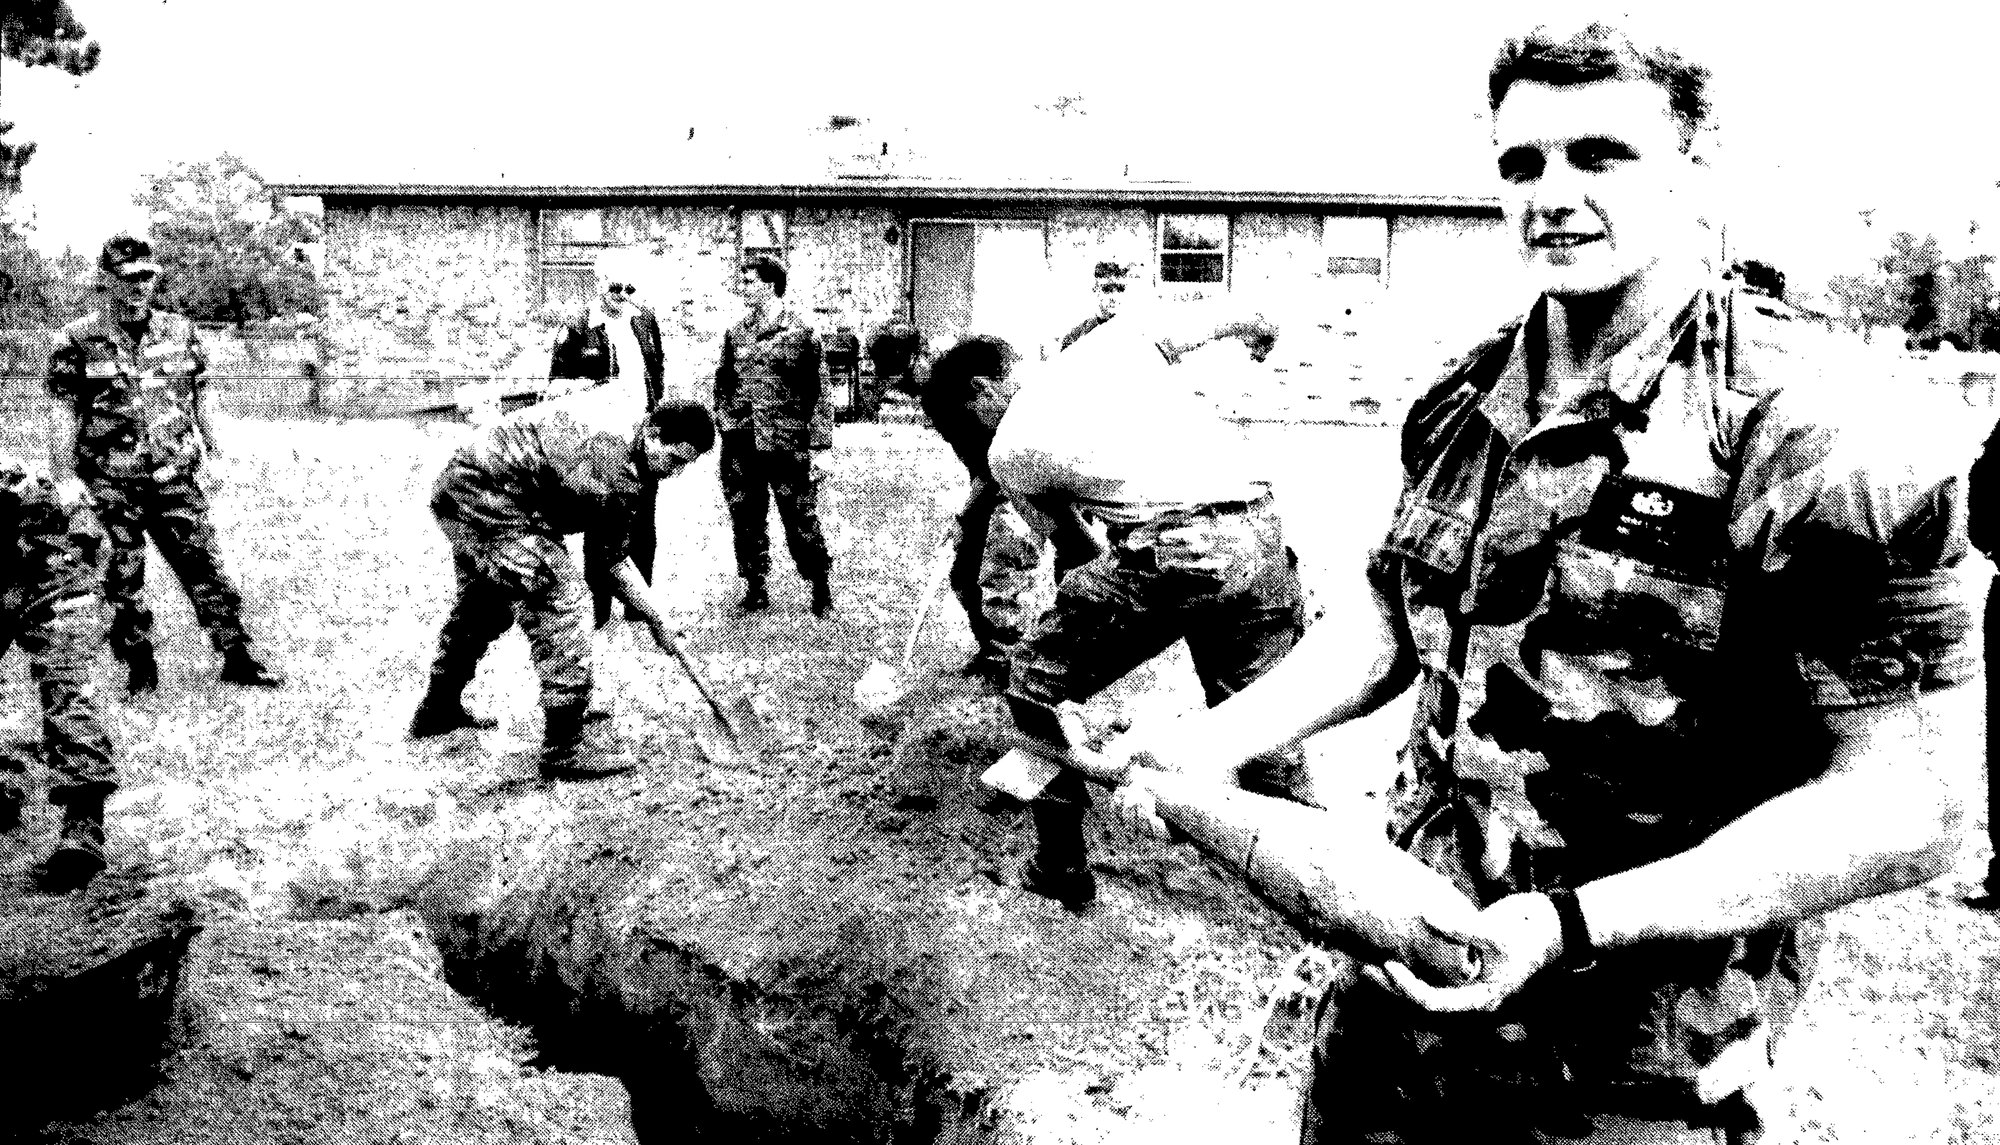 1993 - Staff Sgt. Stephen Miller holds the practice bomb recovered from the backyard of Joe and Charlene Baker as other Shaw Air Force Base airmen fill in the hole. No one was injured after the bomb was accidentally dropped from an F-16.